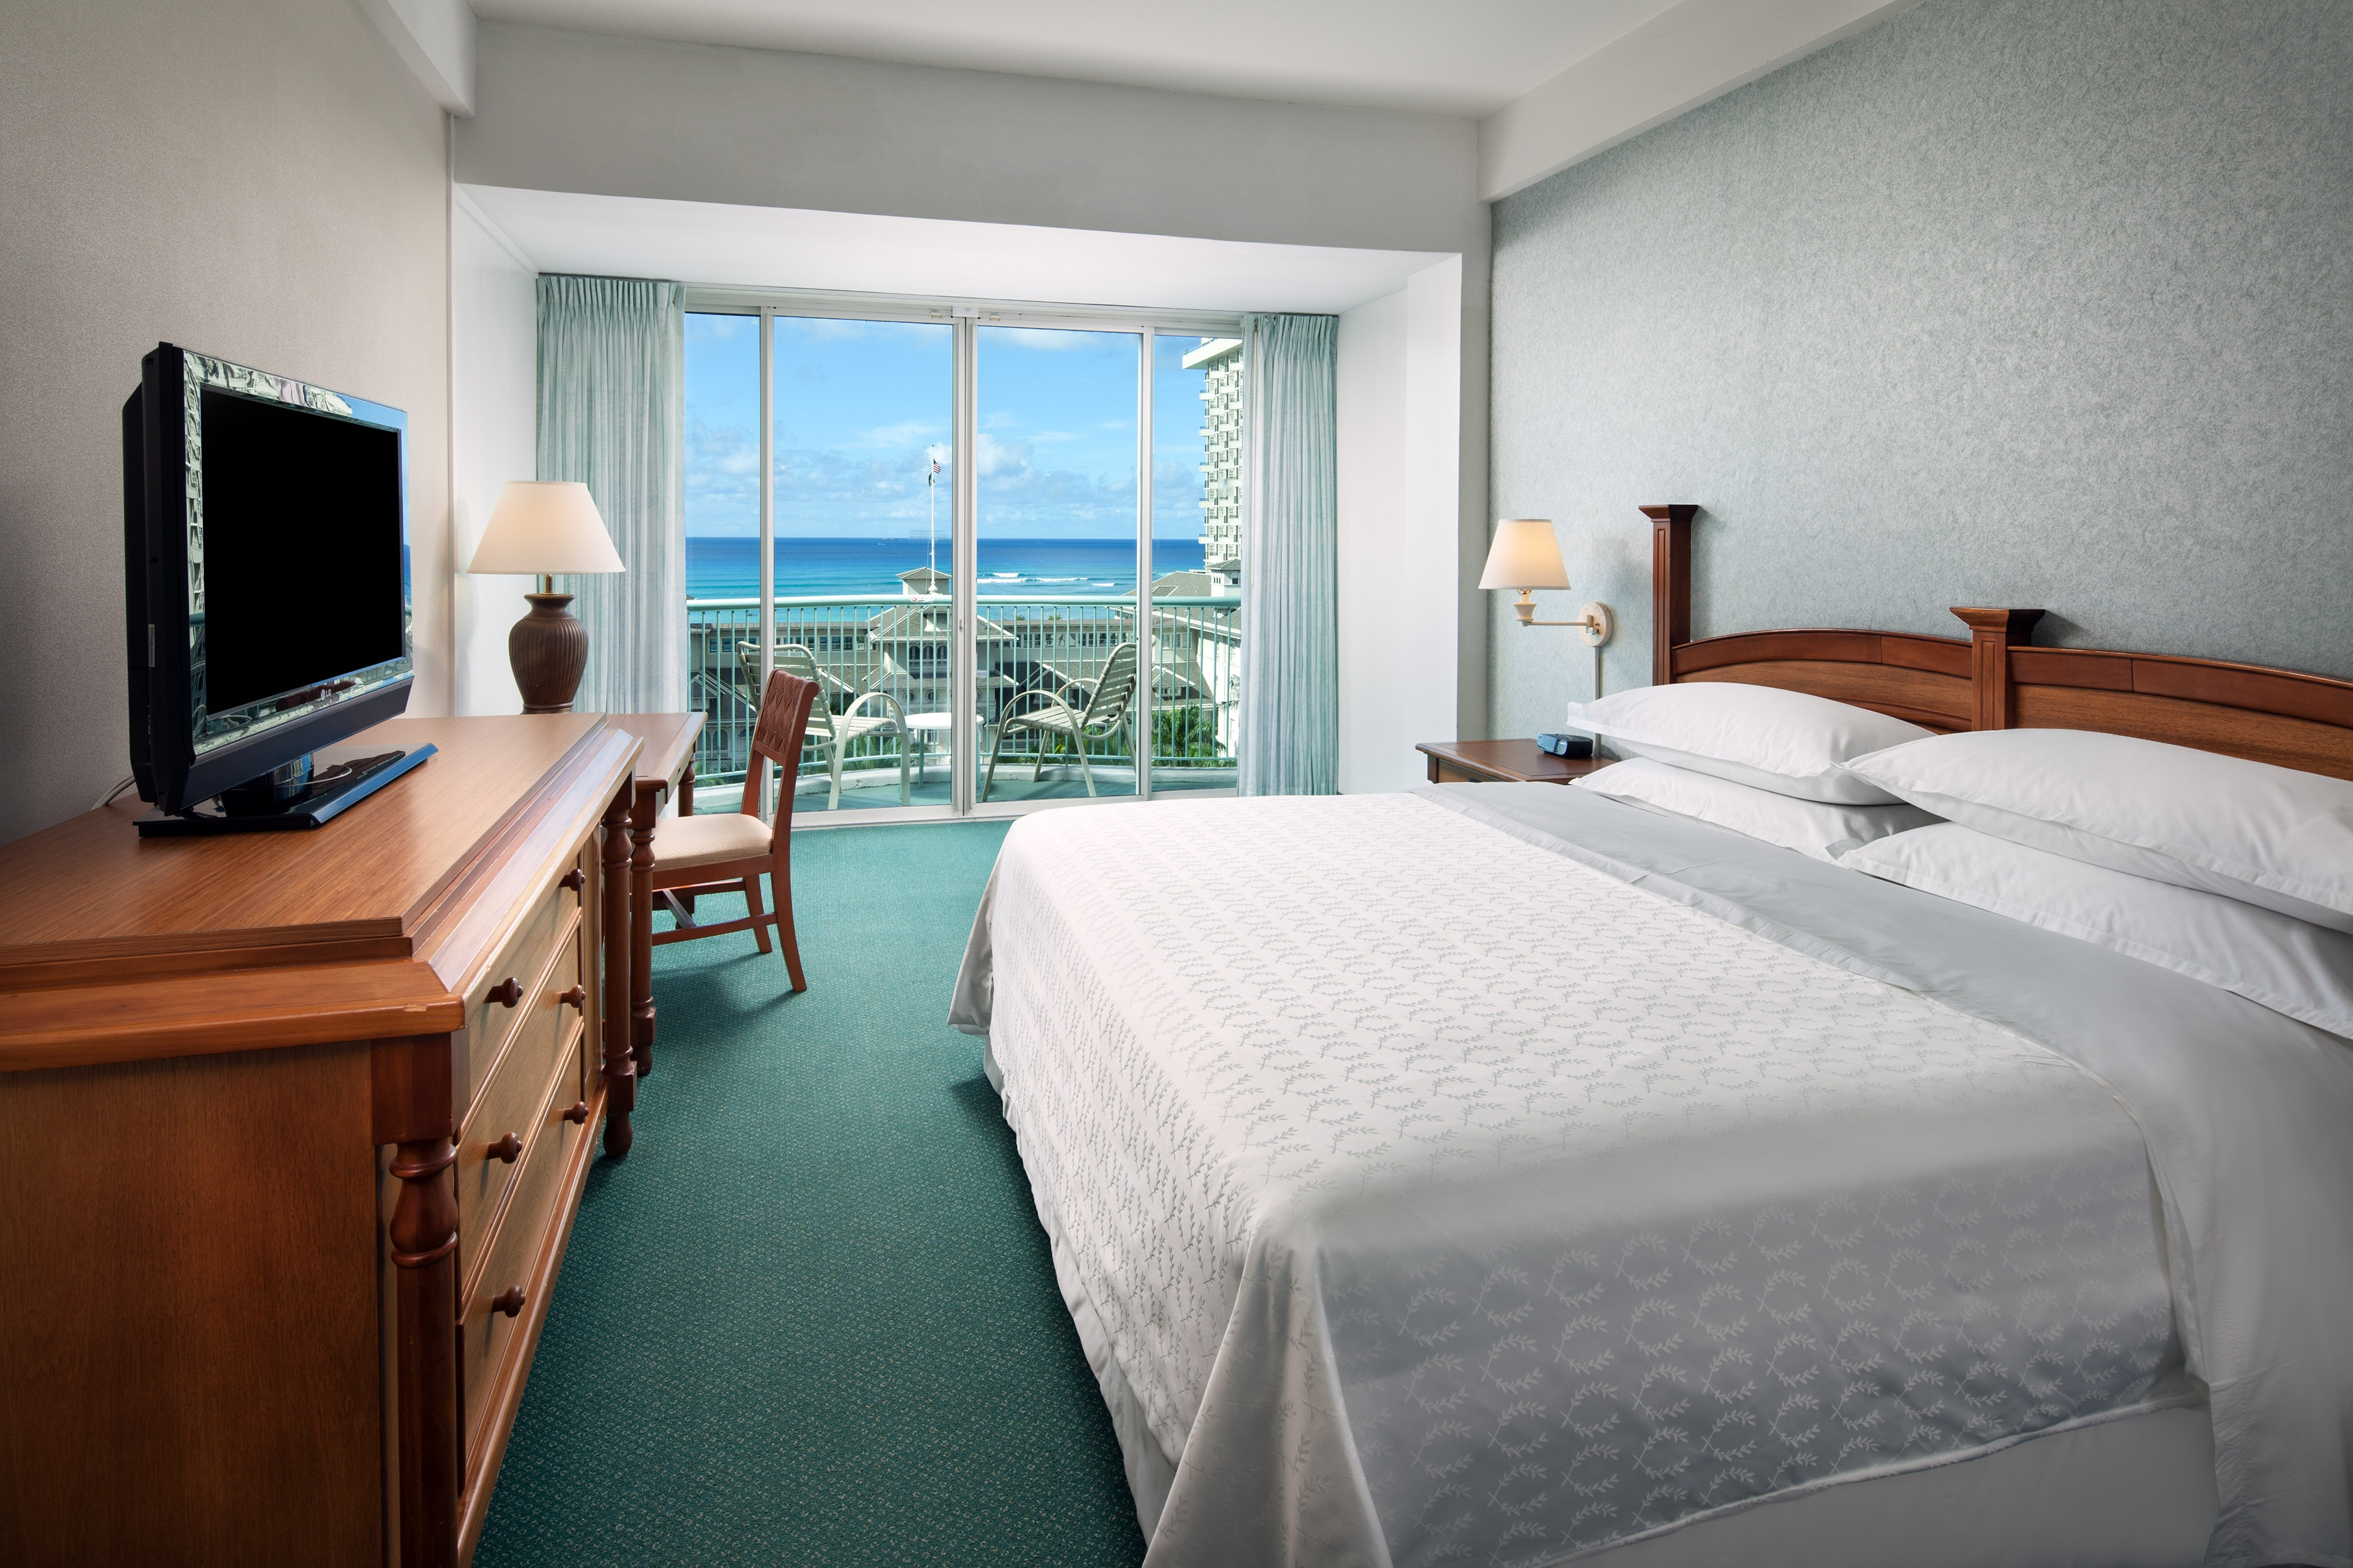 King Princess Ocean View Guest Room